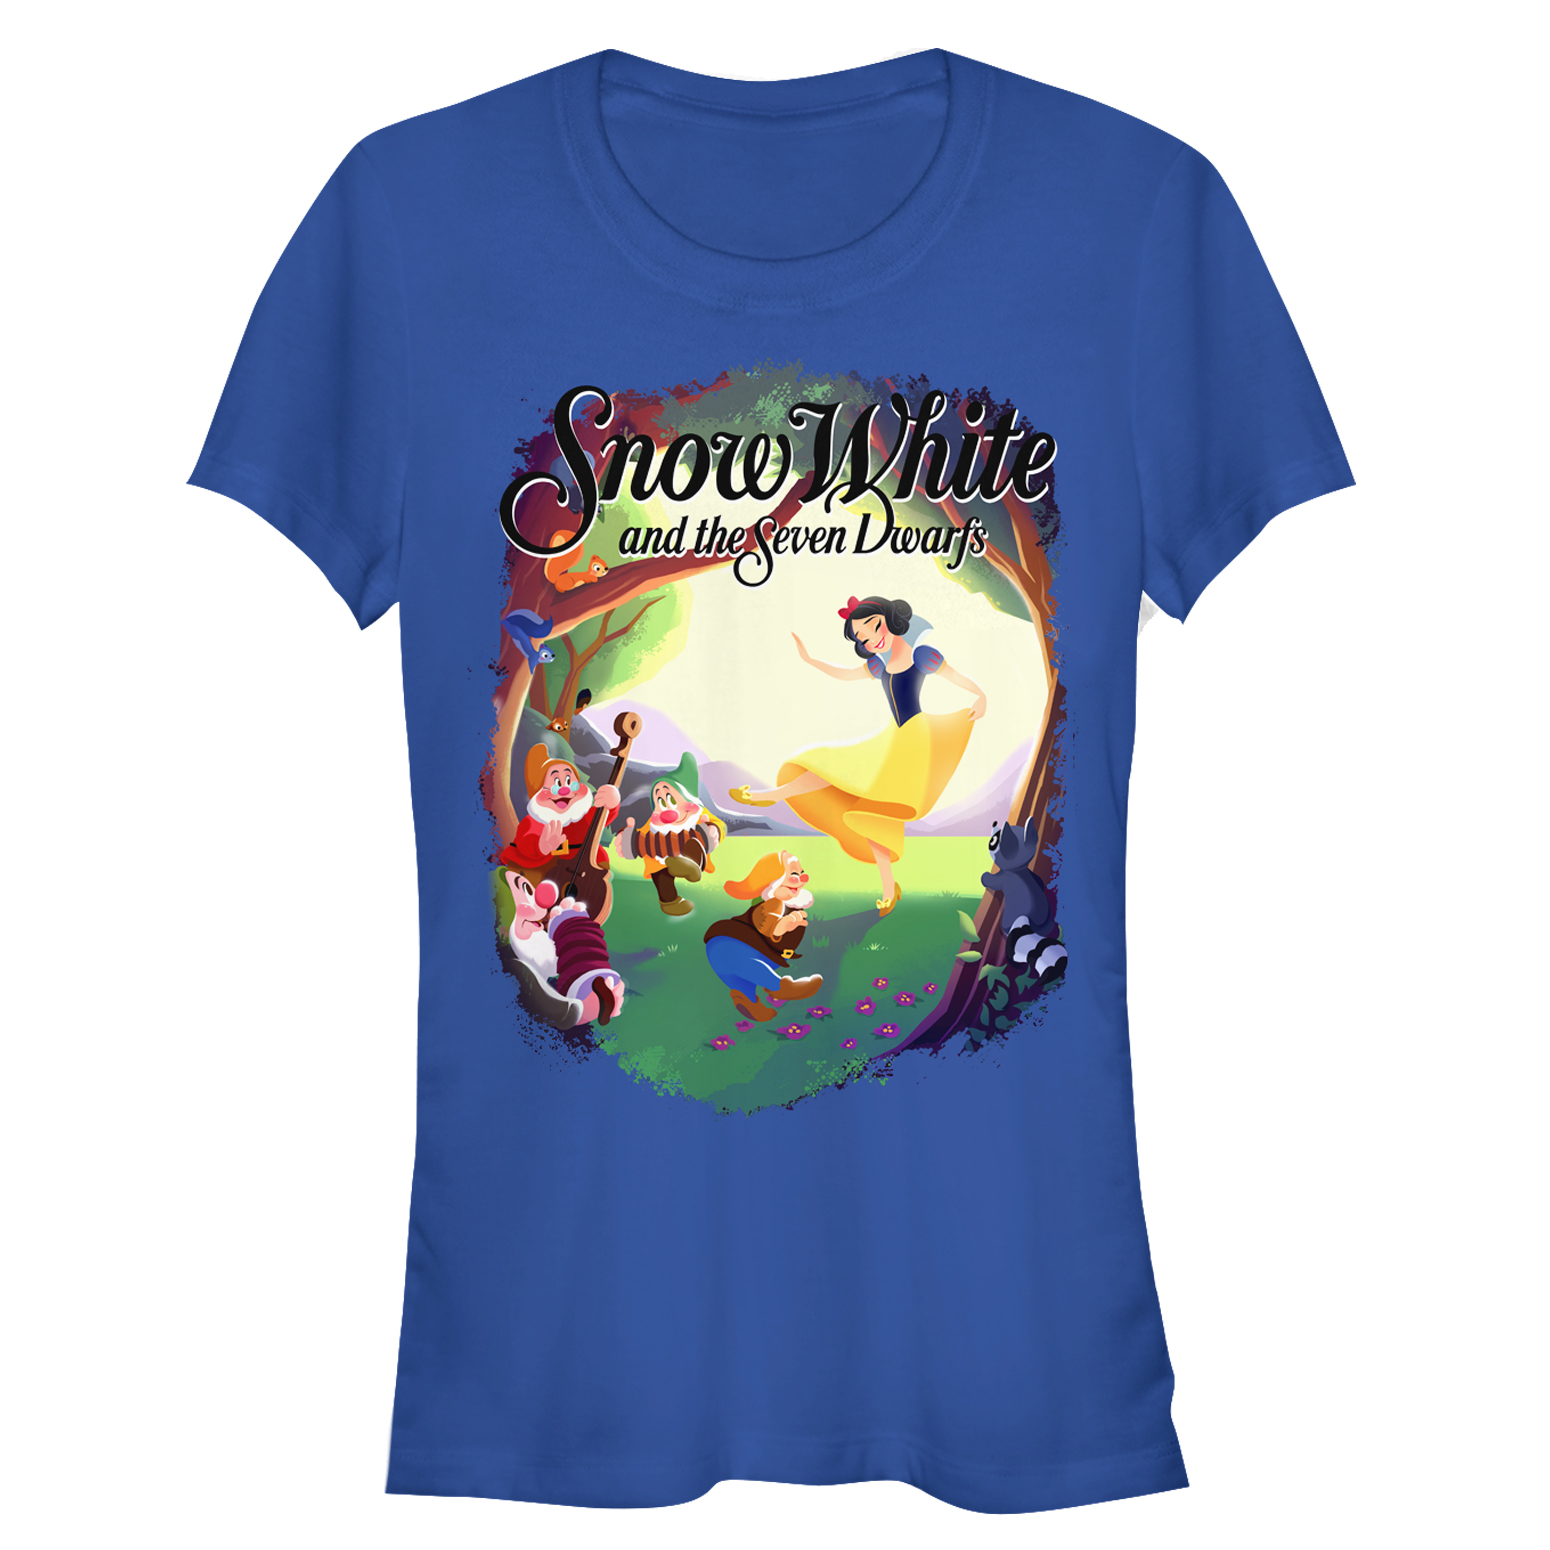 Snow White and the Seven Dwarves Juniors' Dance Scene T-Shirt